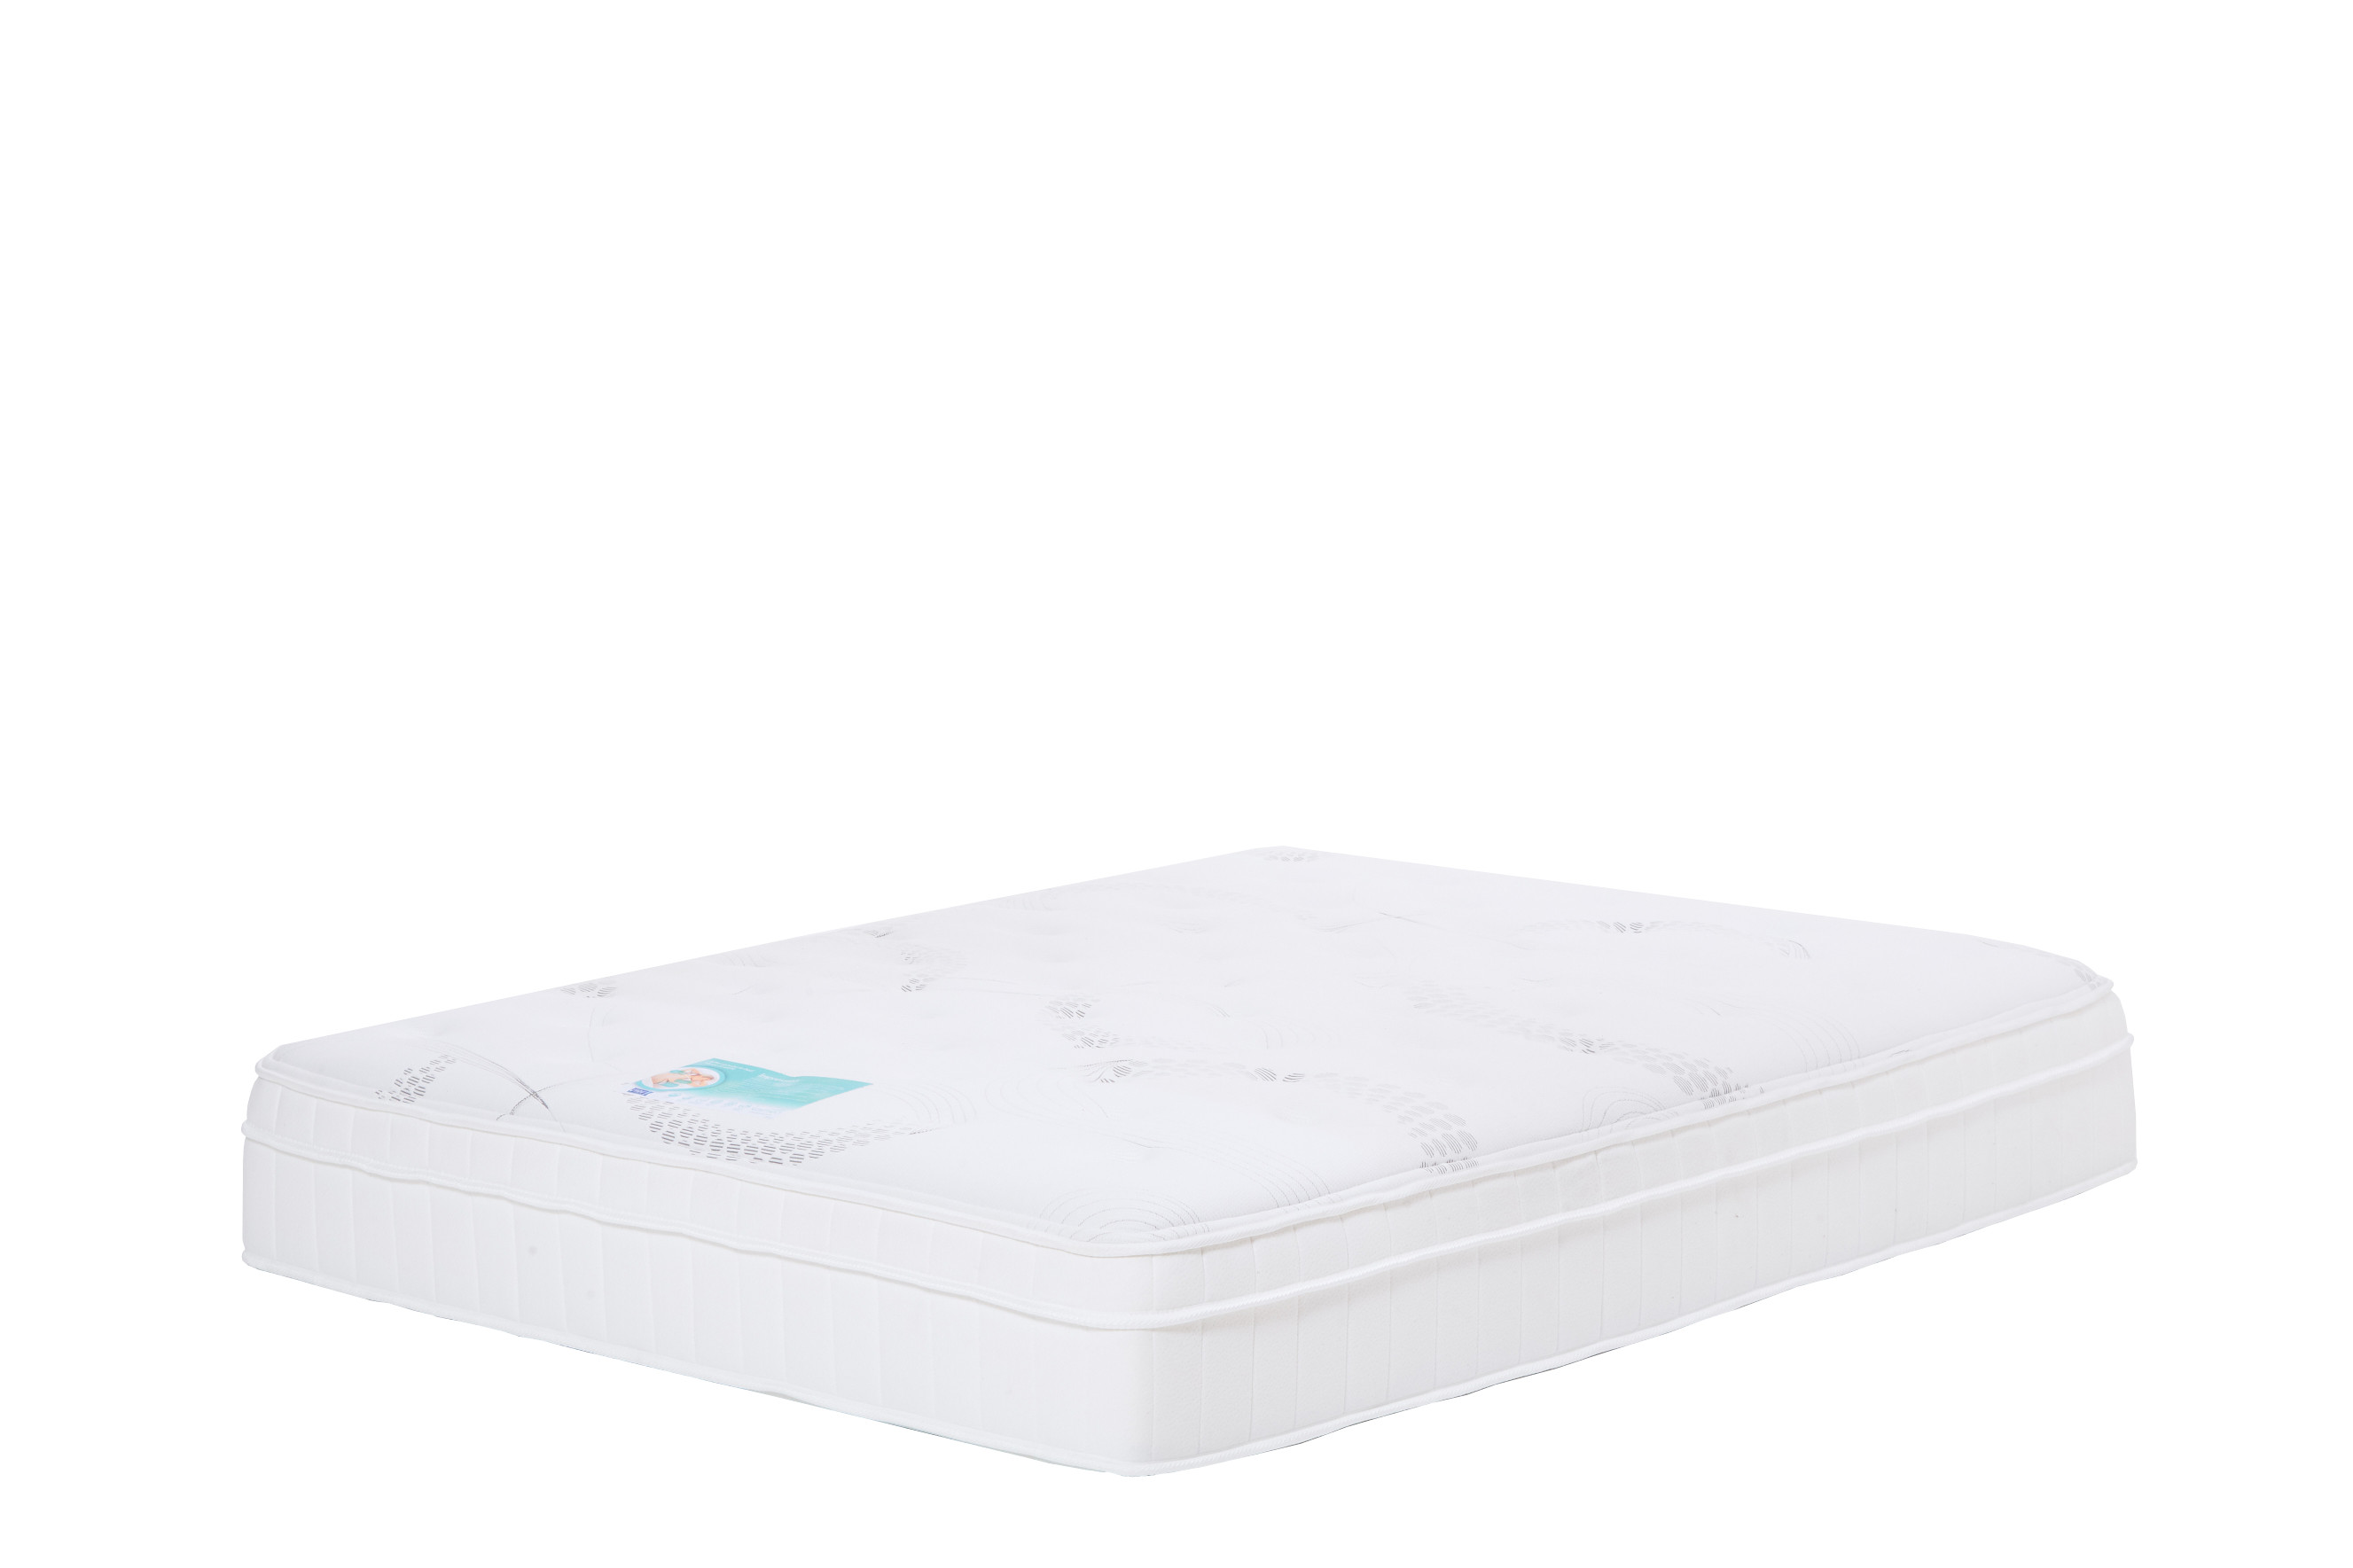 Kaymed Impression Mattress